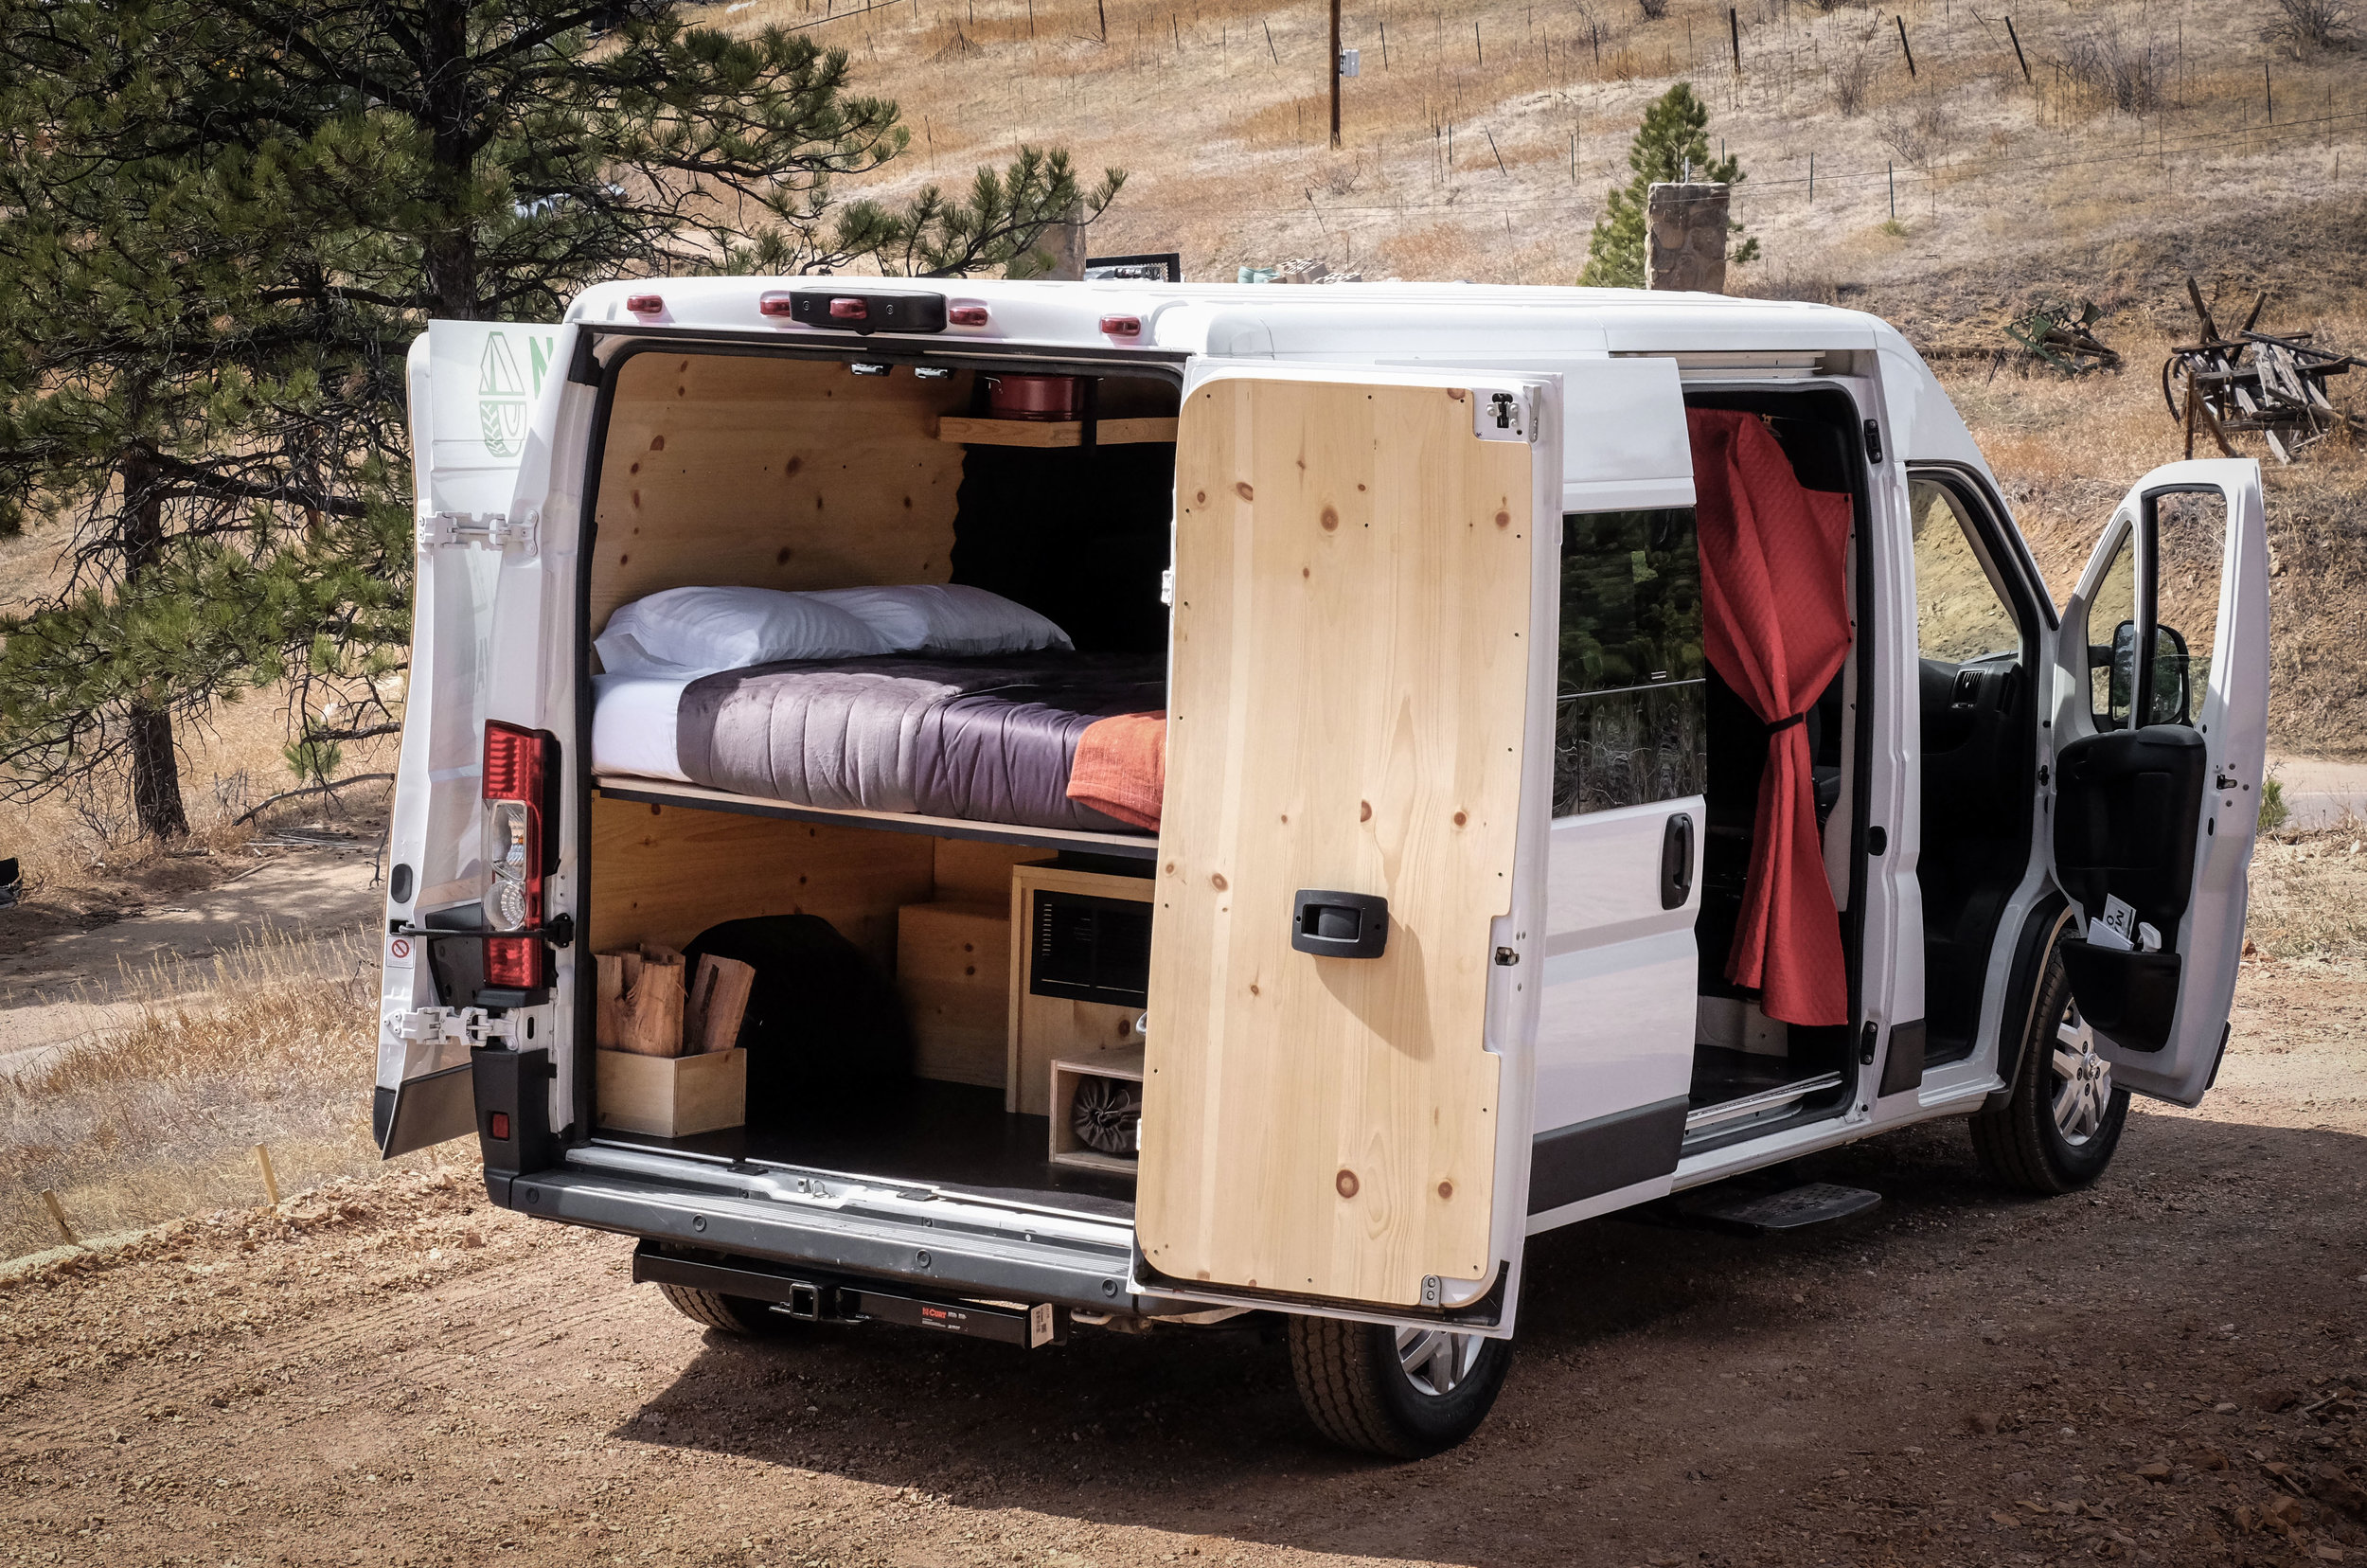 Timber opens up to create a usable and sharable space while on the trail or in the park.